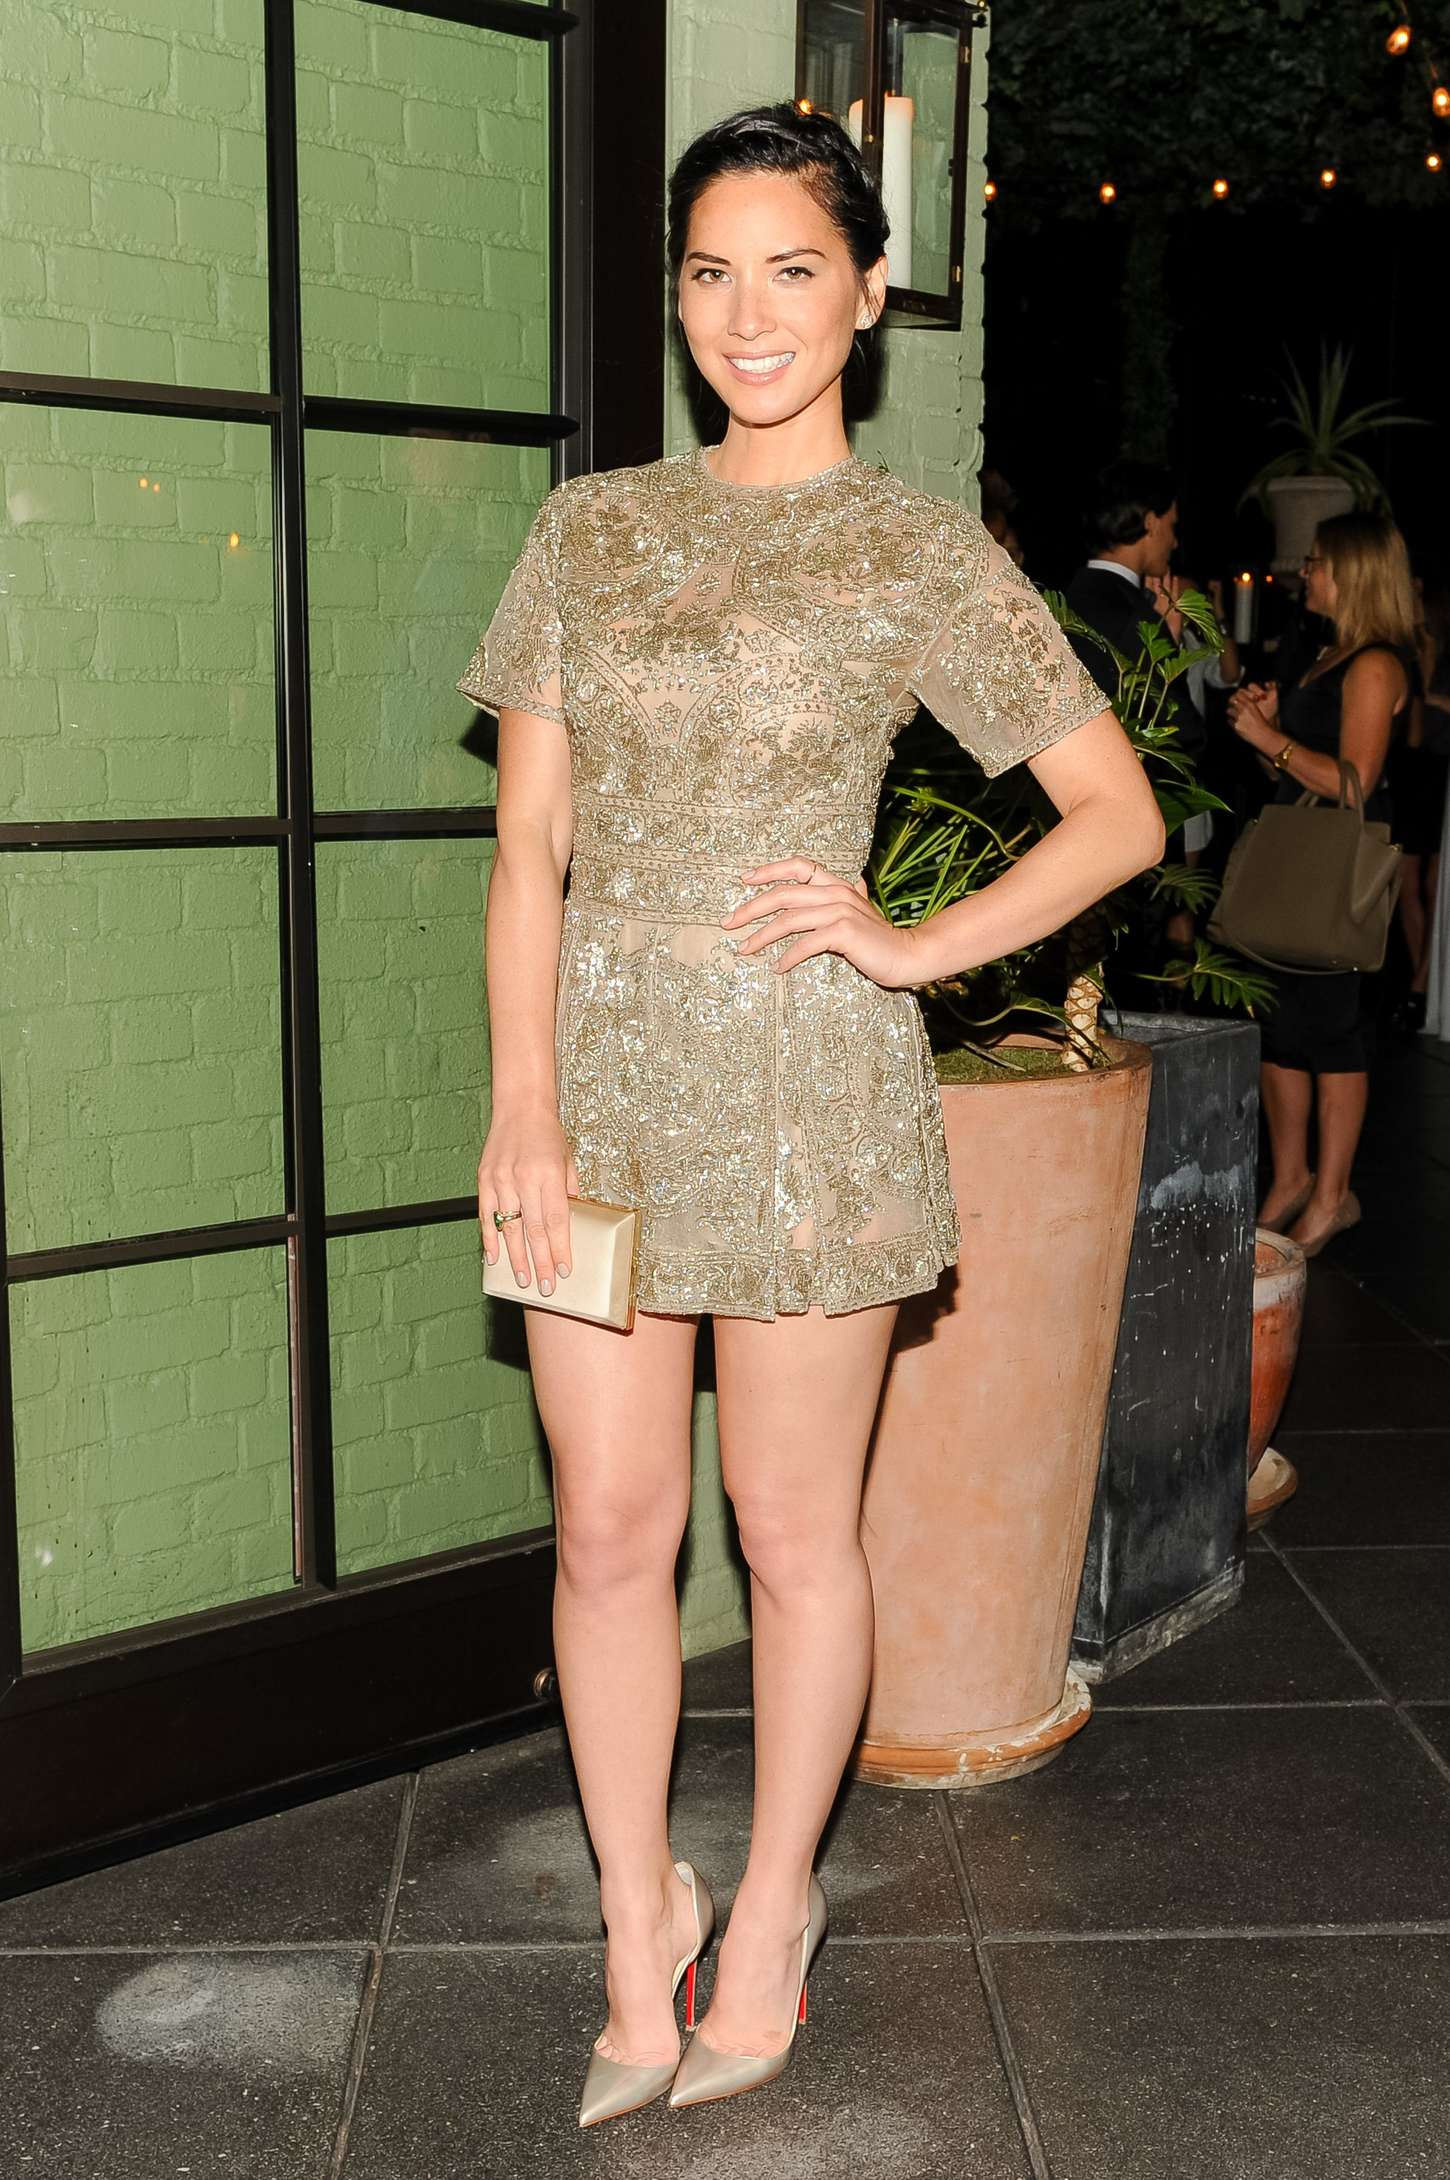 Olivia Munn - The Hollywood Reporter and Micaela Erlanger Celebrate Fashion Week in New York